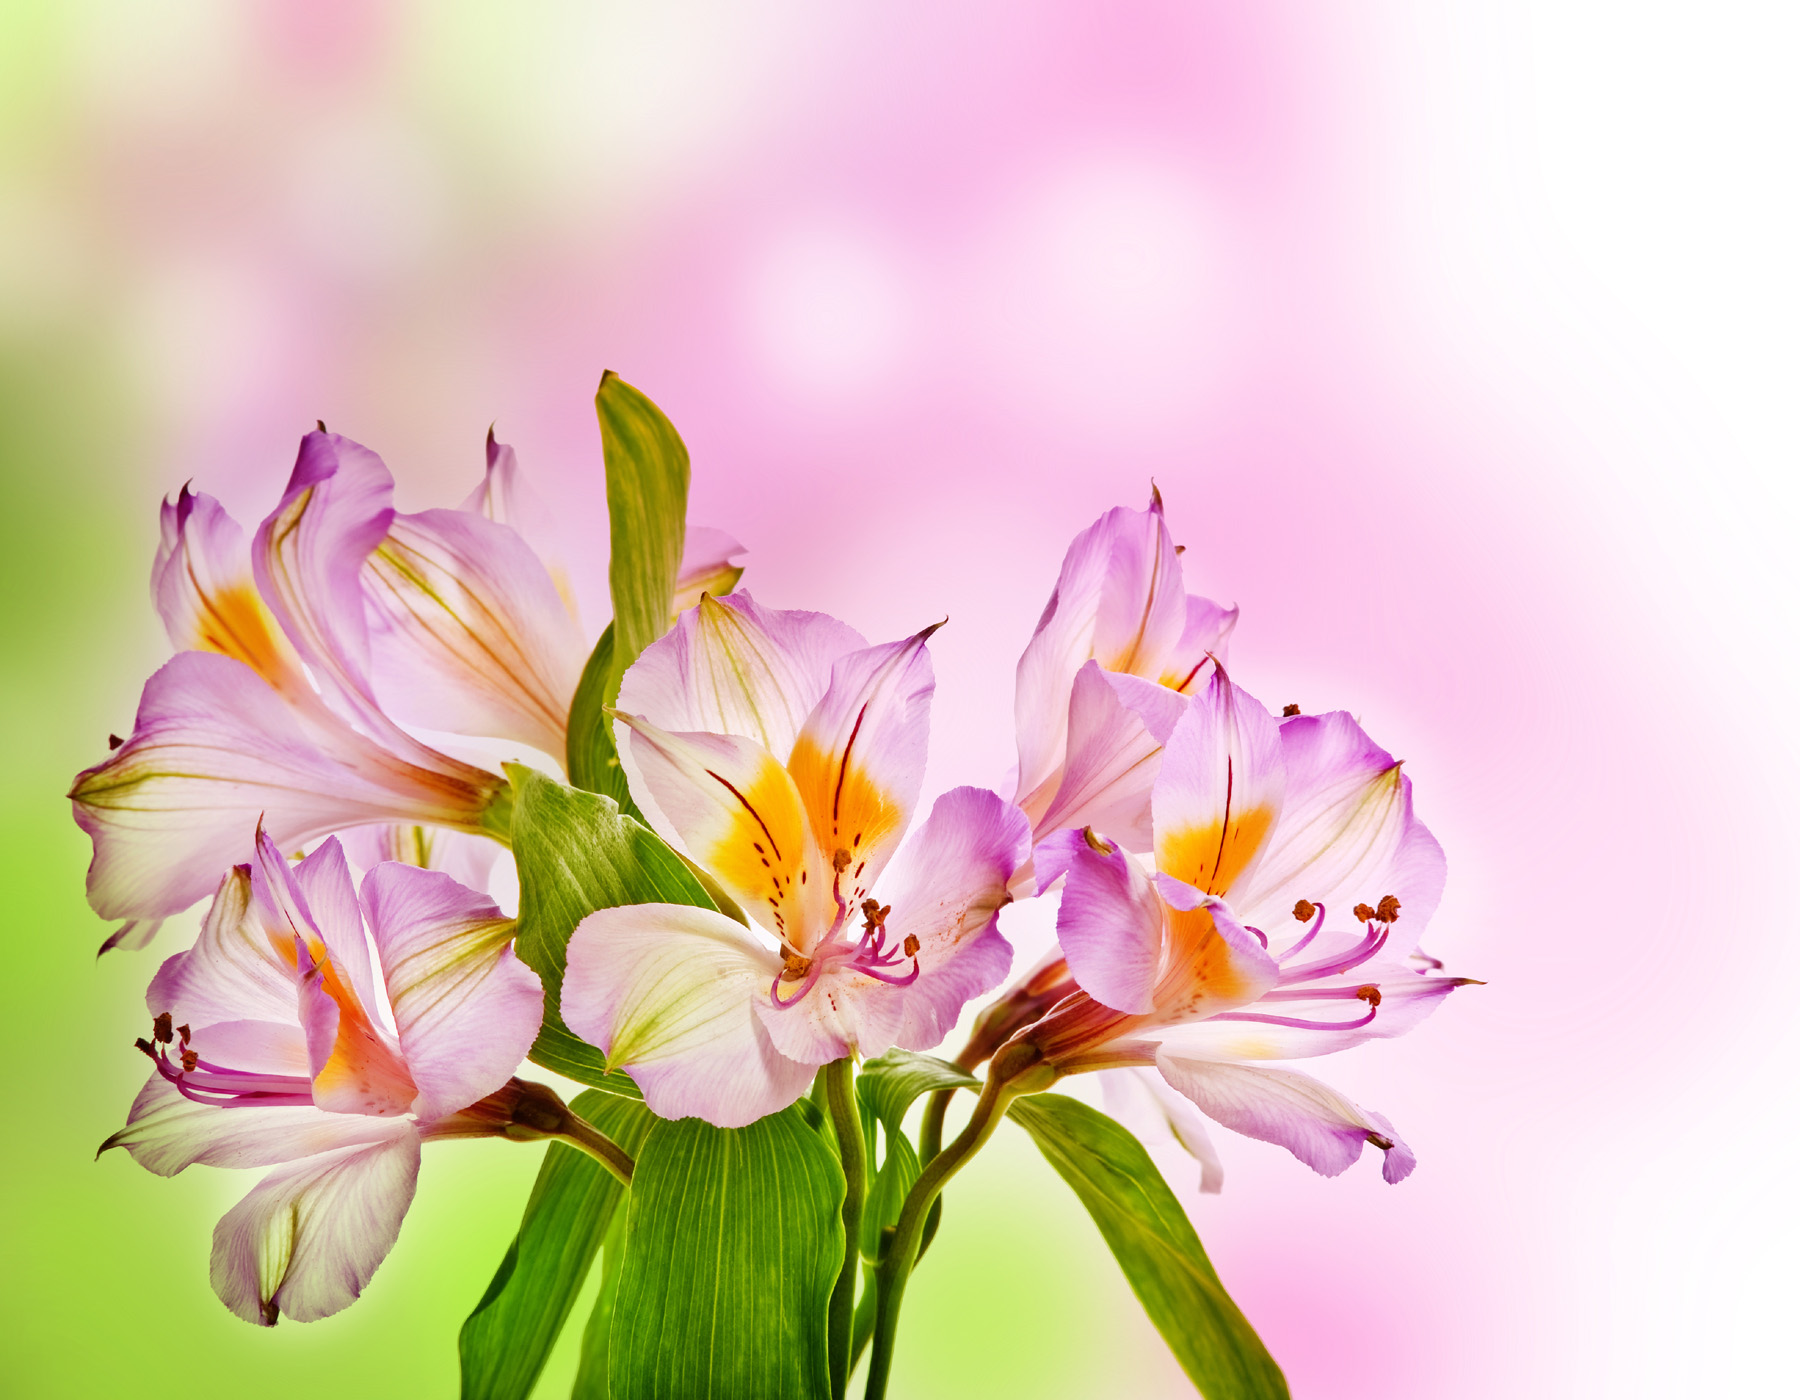 Flower wallpaper 51683